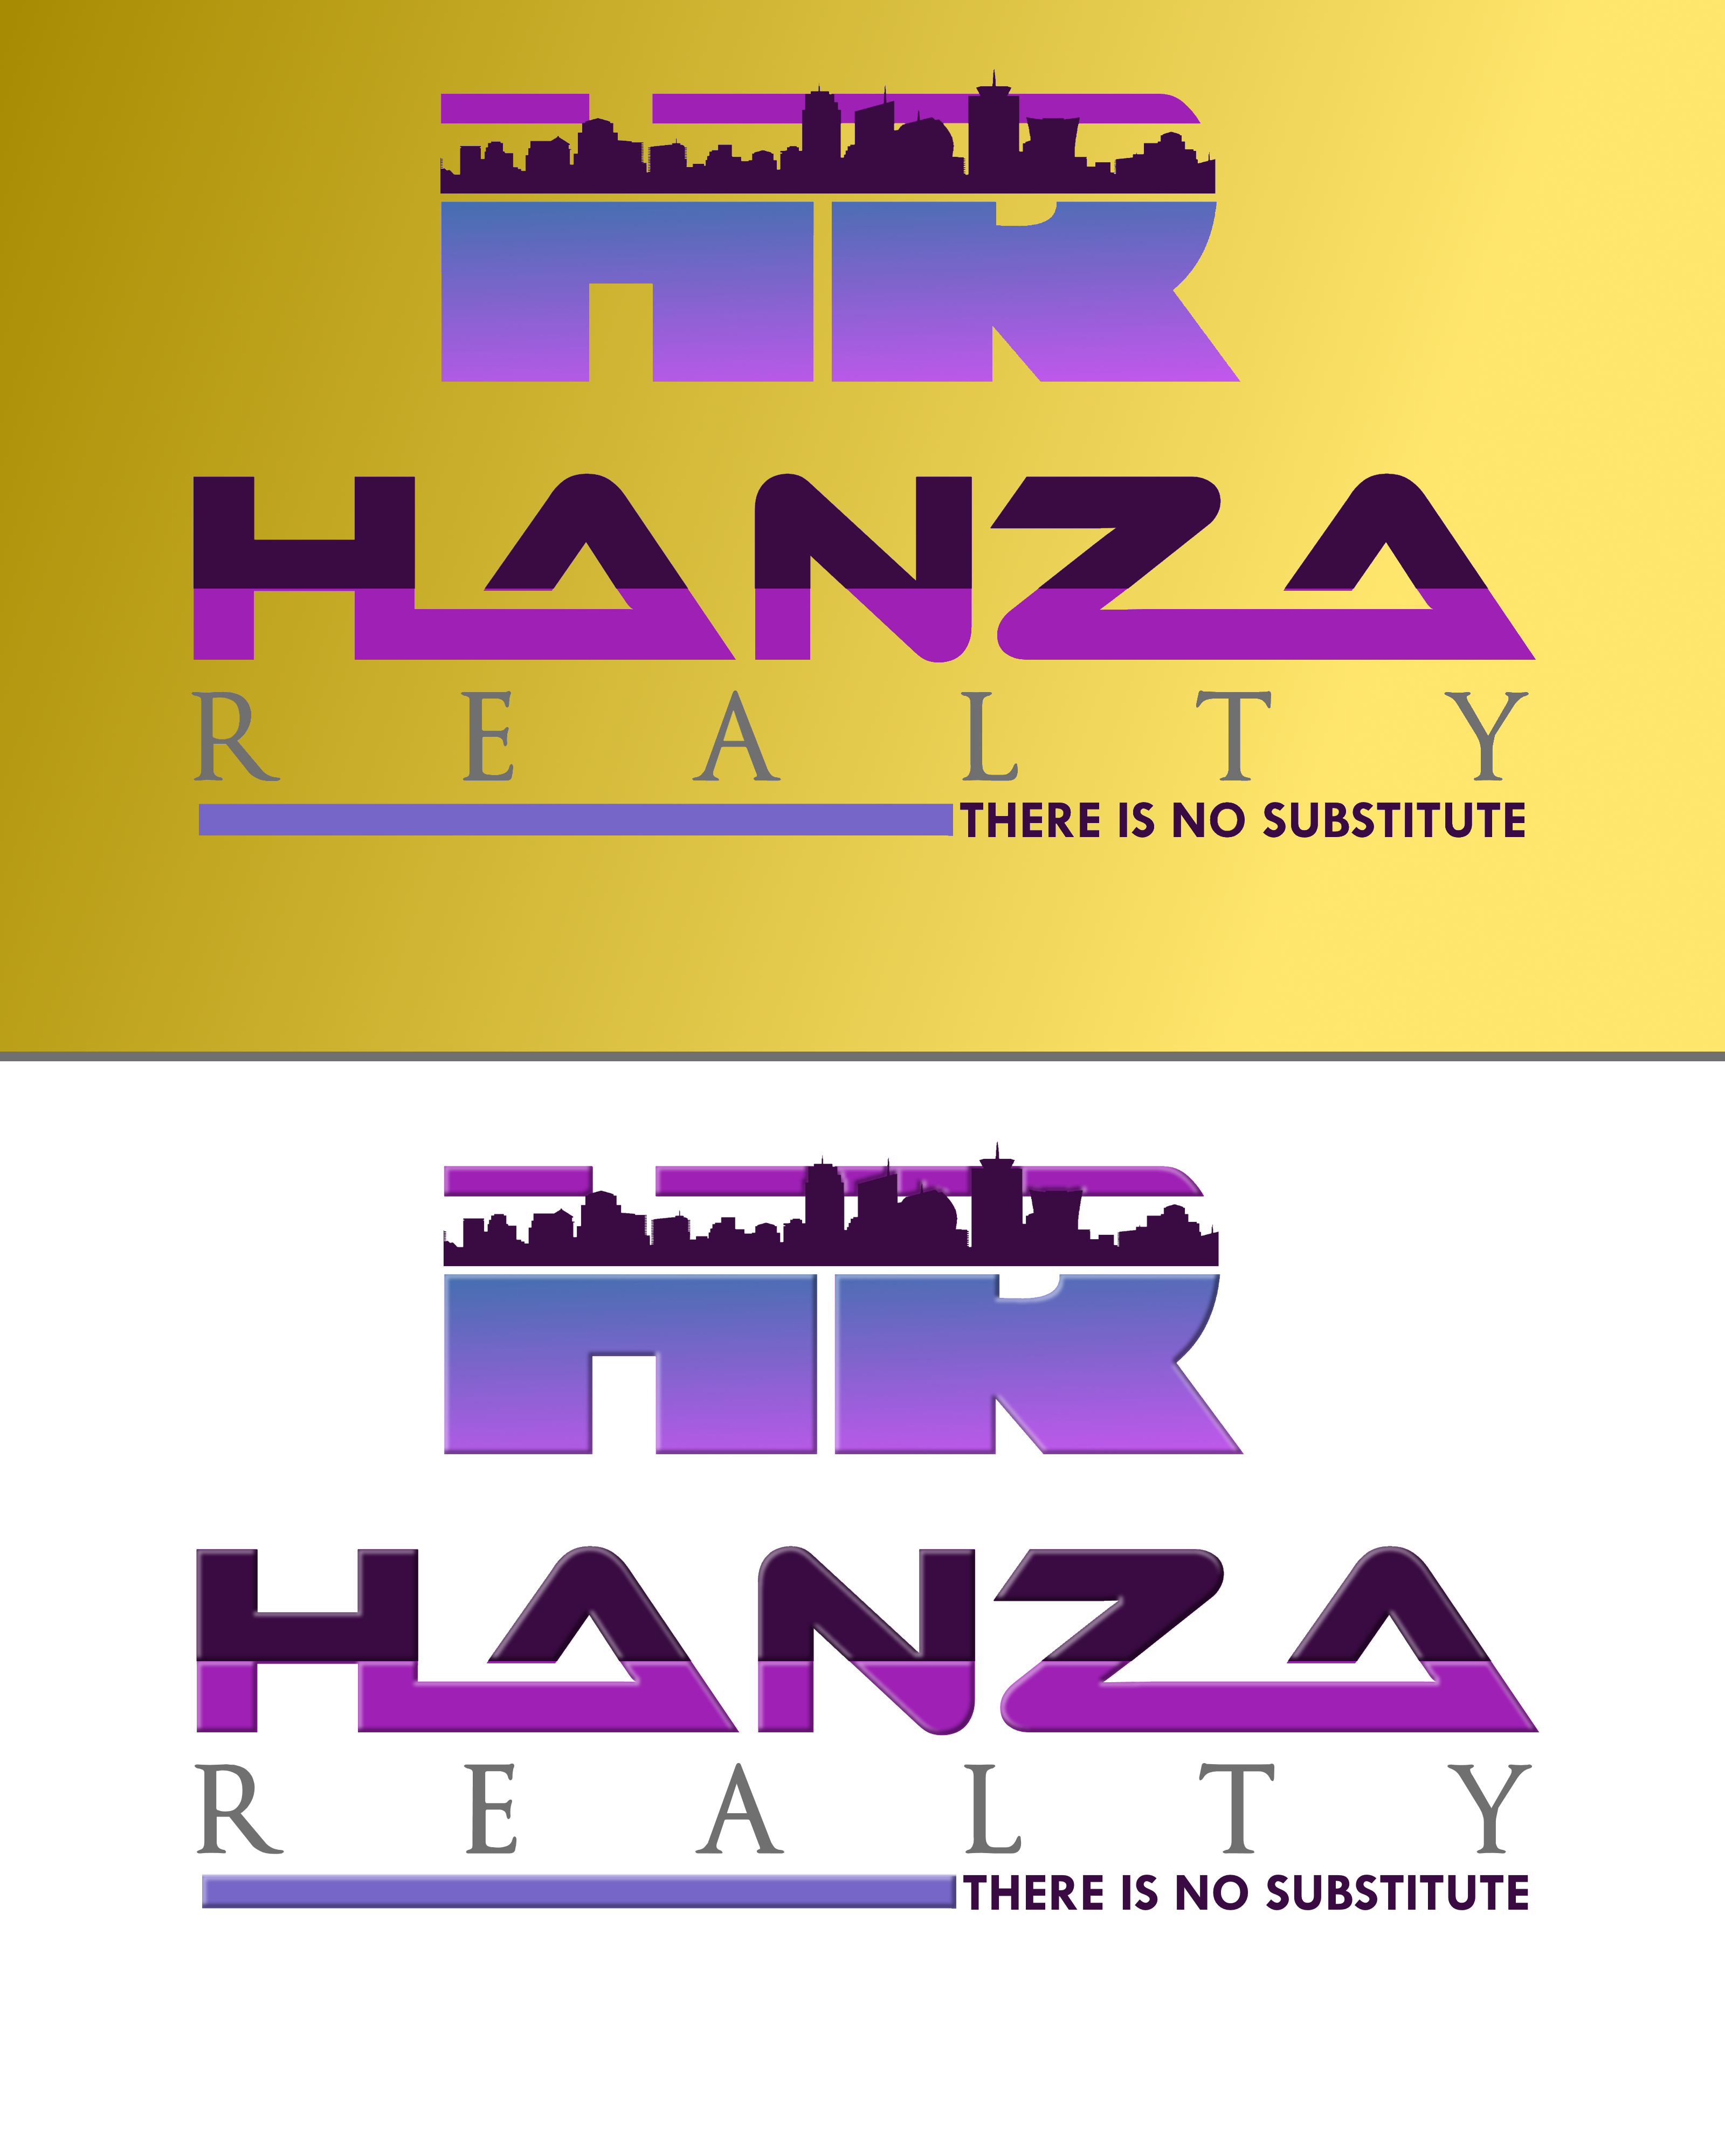 Logo Design by Roberto Bassi - Entry No. 444 in the Logo Design Contest Logo Design for Hanza Realty.